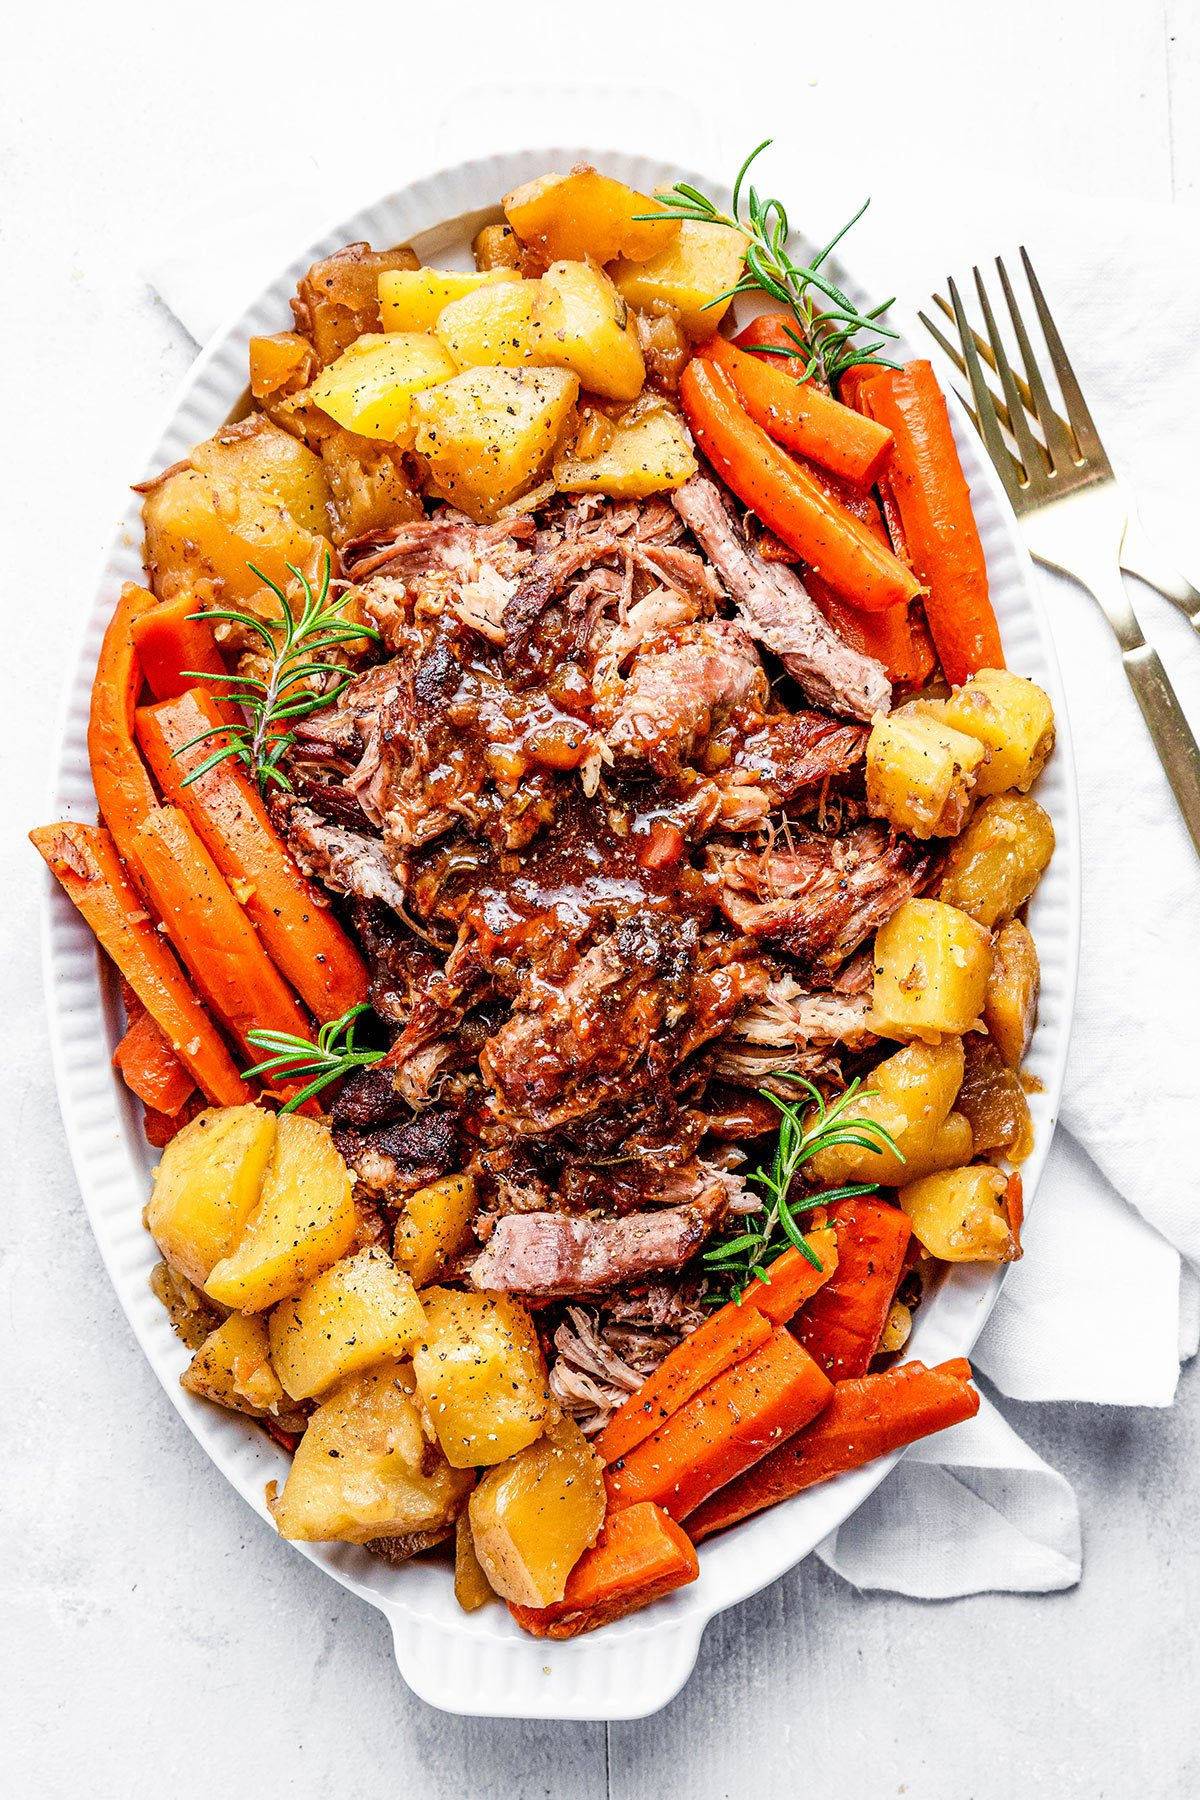 Overhead view of Instant pot pork roast with potatoes and carrots